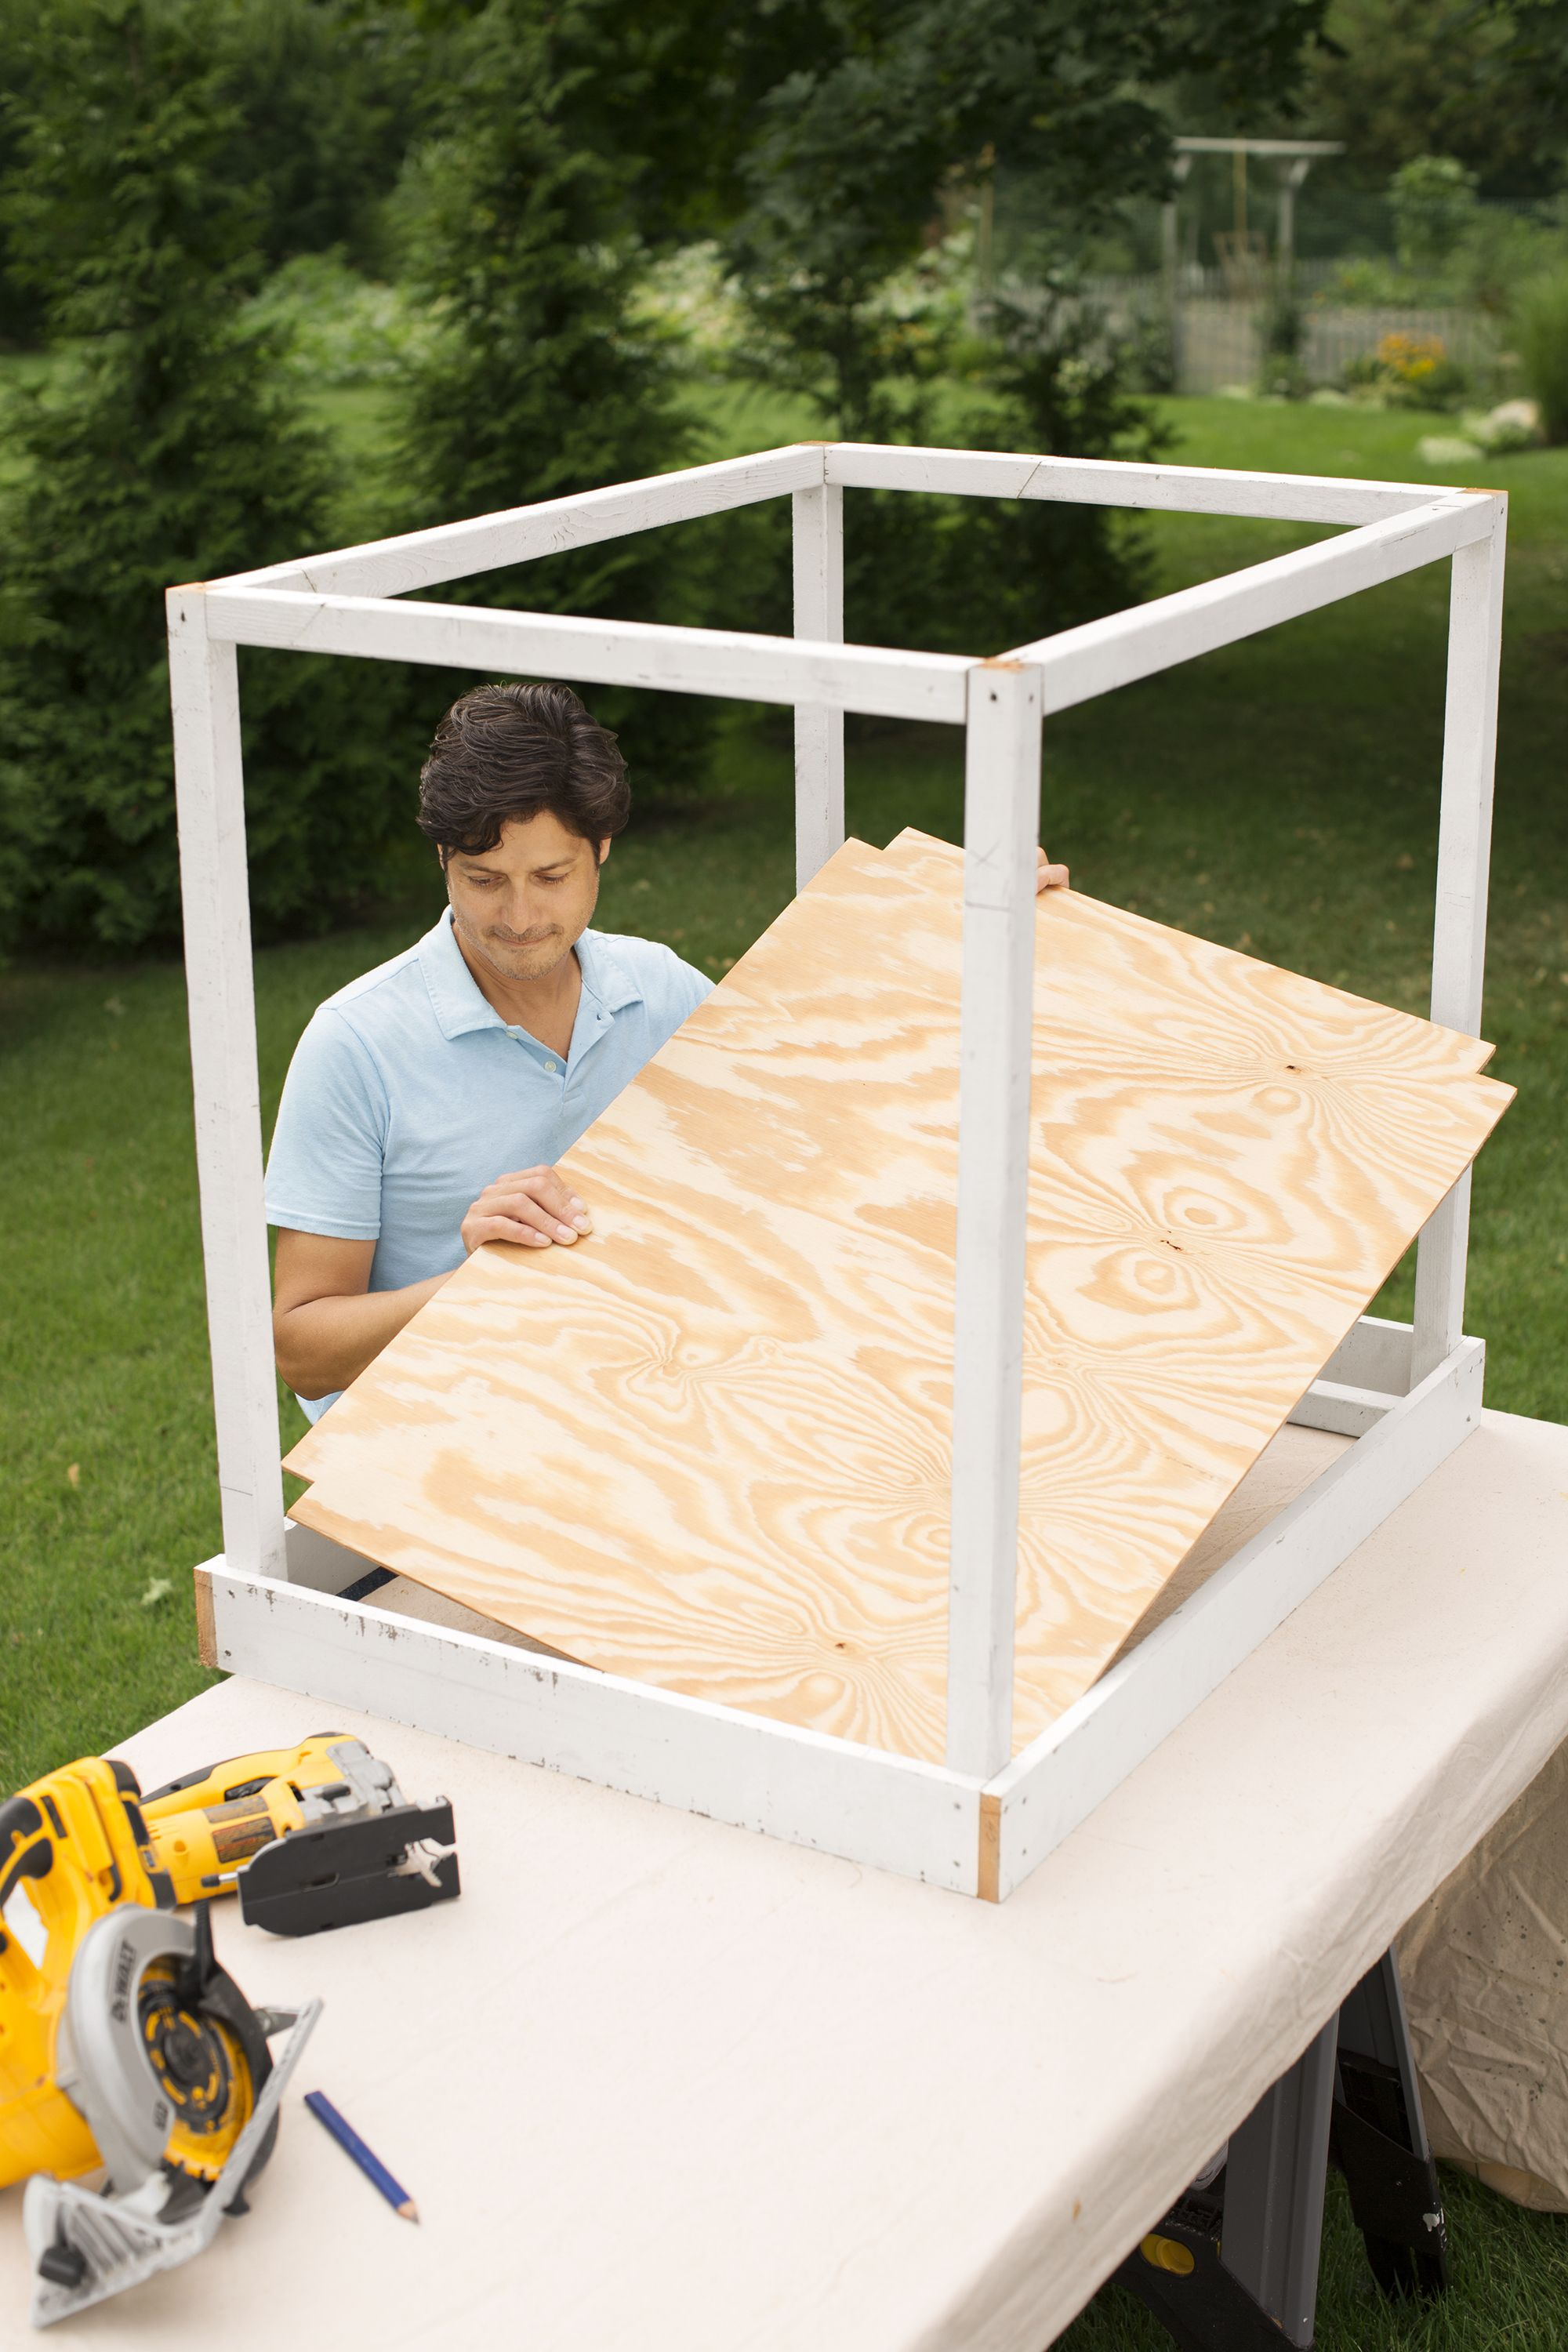 How to Build a Catio Catio, Cat playground, Screened in